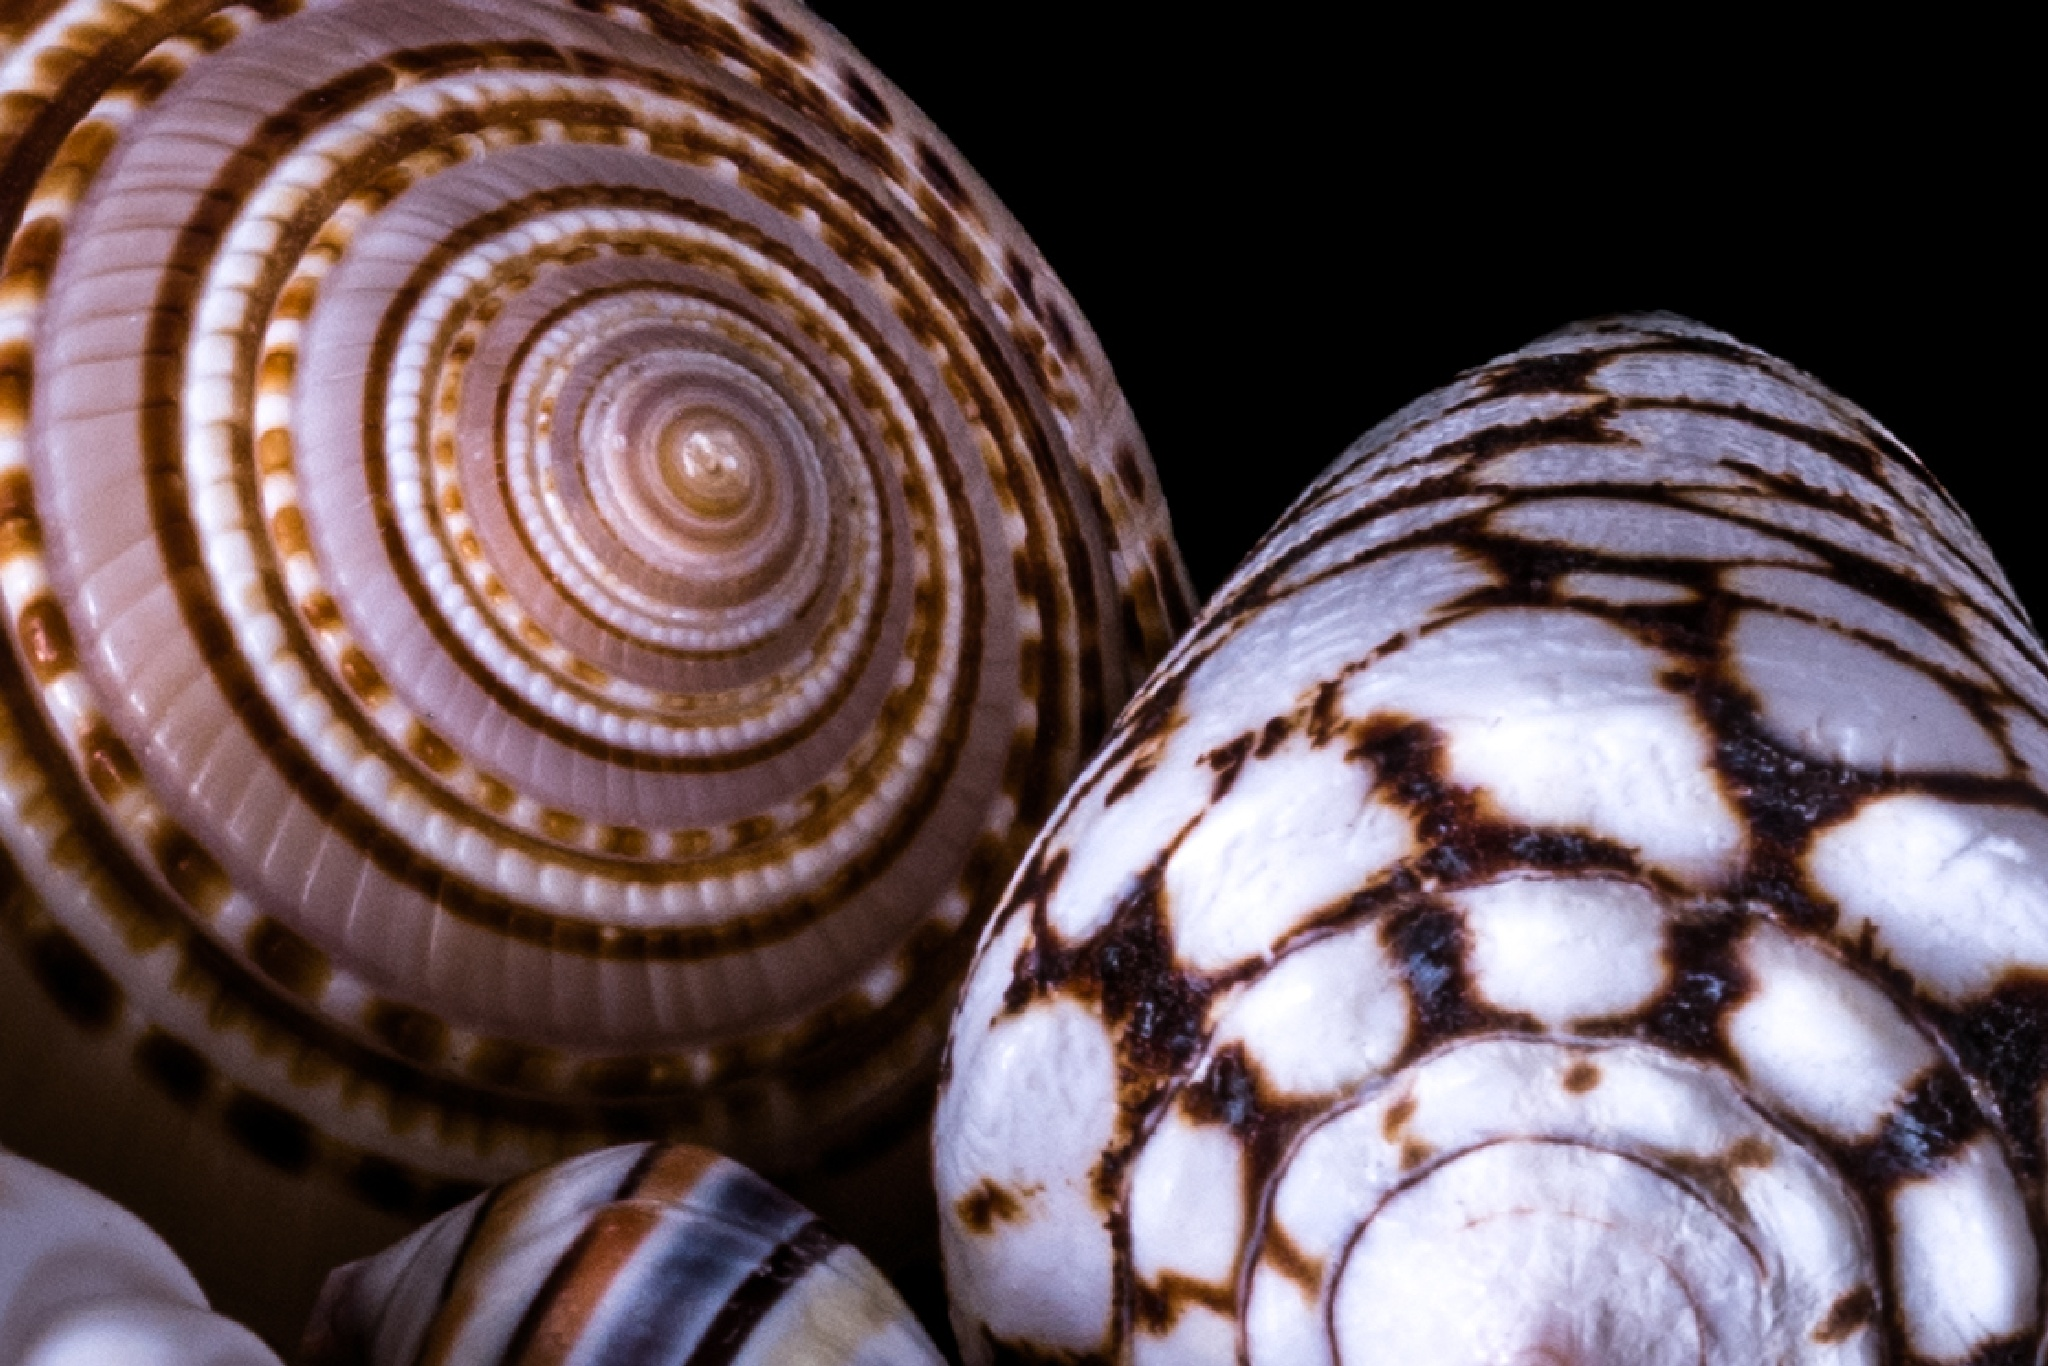 TIght on the Shells by John Schneyer